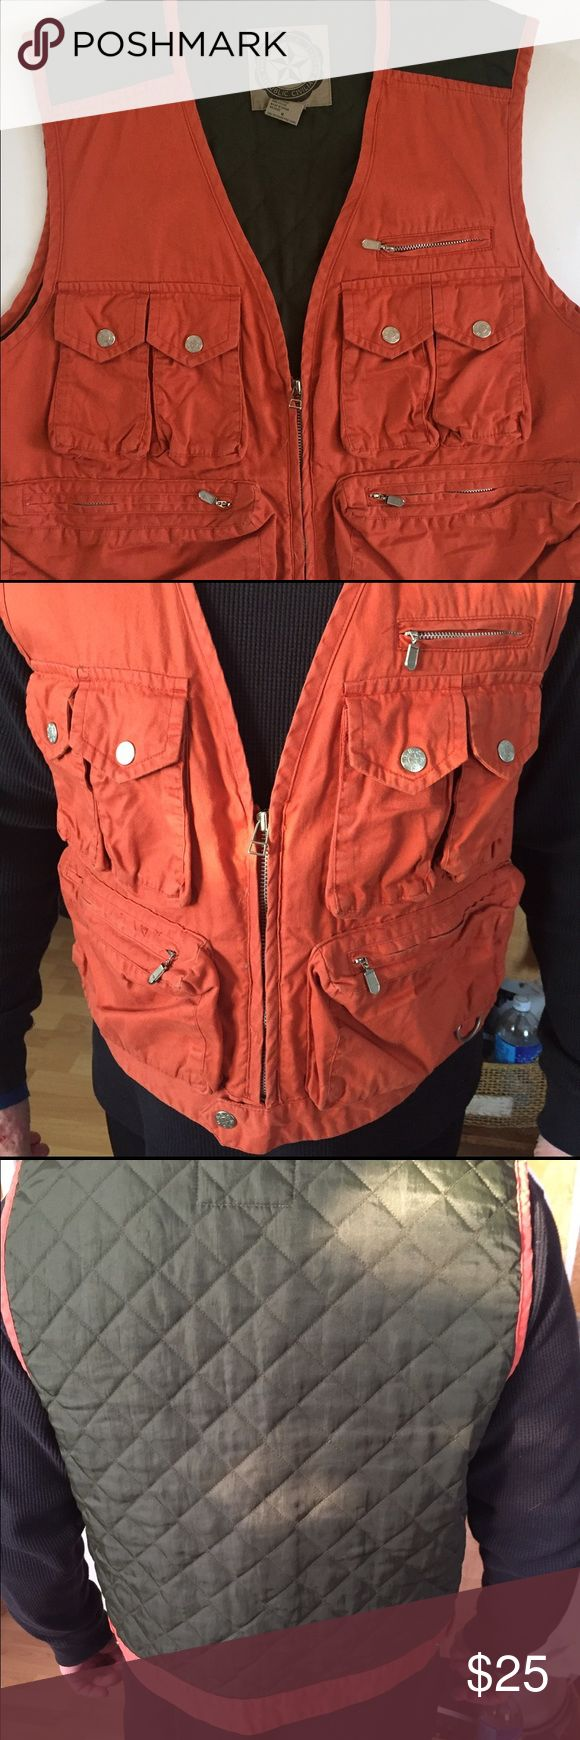 Banana Republic Safari Vest Medium sized vest lots of front pockets for photo supplies or fishing or a safari. !! Good preowned condition.  Size men's medium. Banana Republic Suits & Blazers Vests